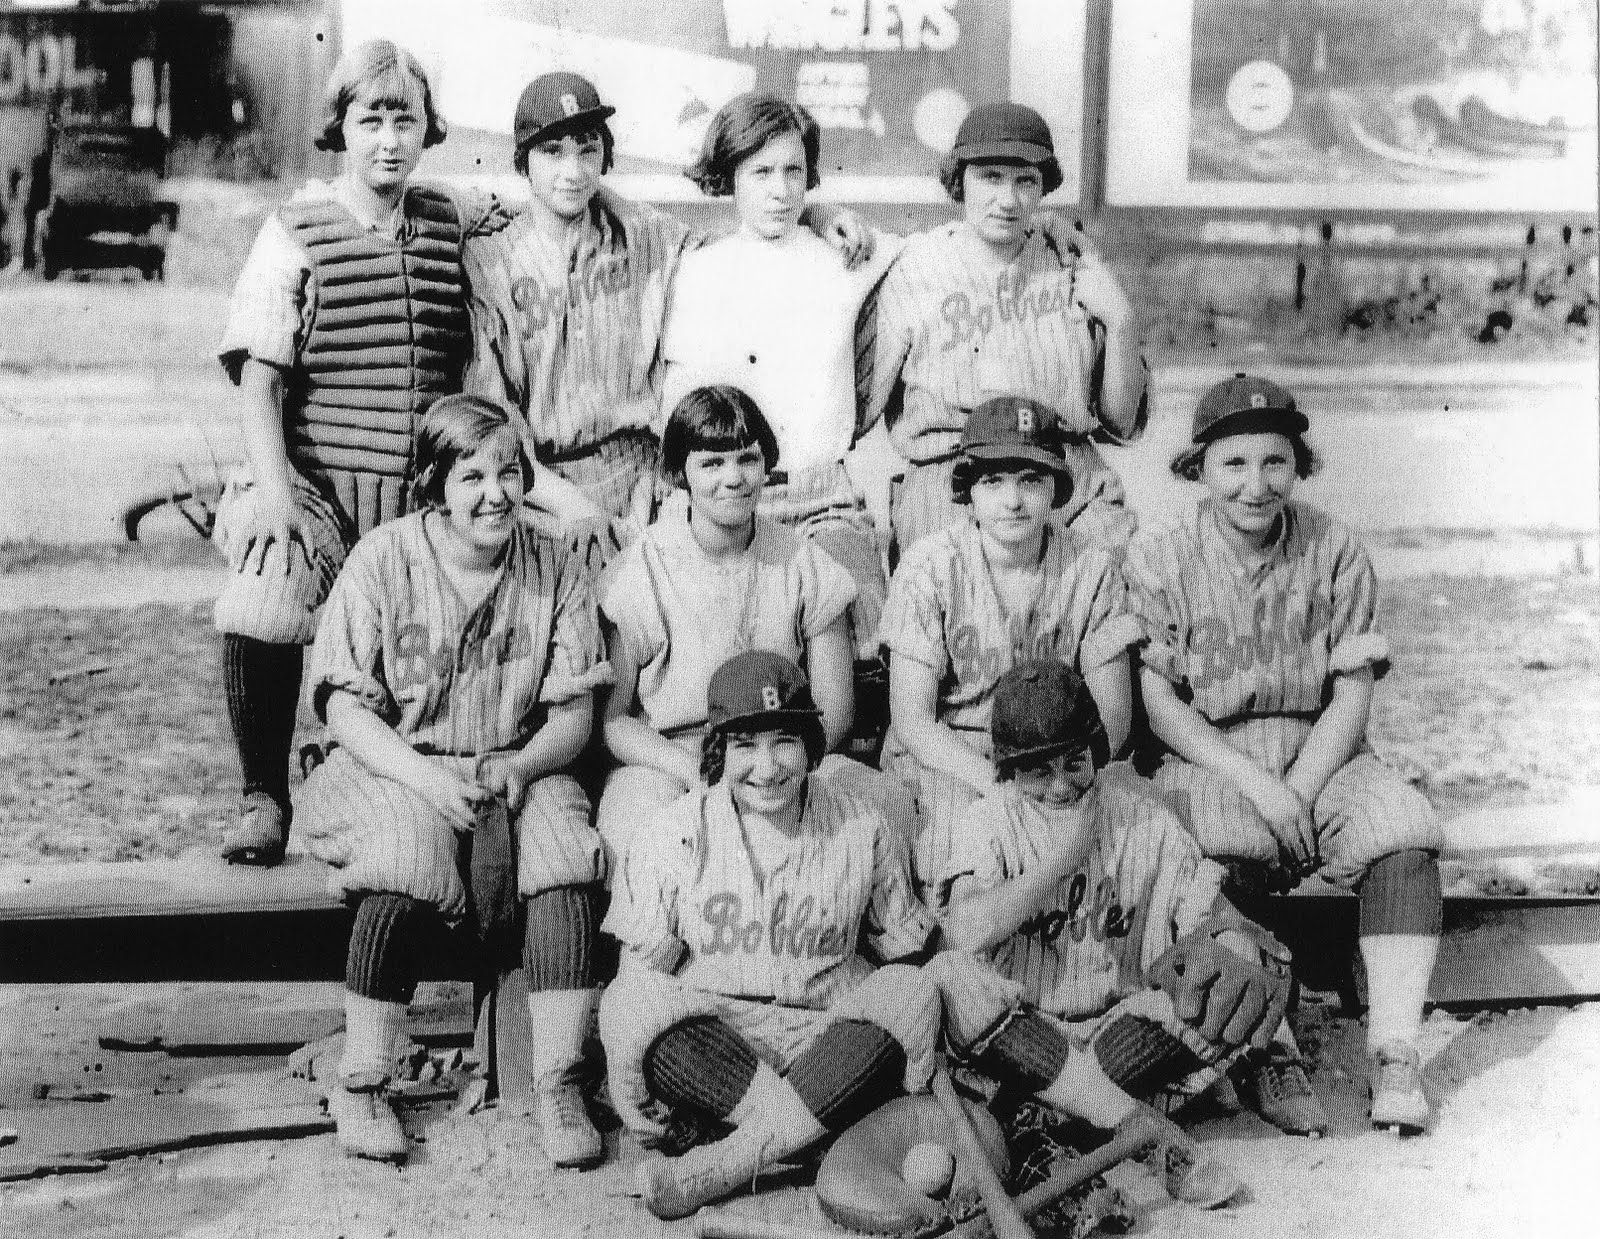 1920 baseball Intro why did baseball grow in the 1920's baseball grew due to several factors in the 1920's the invention of the radio and car radio allowed for games to be listened to.